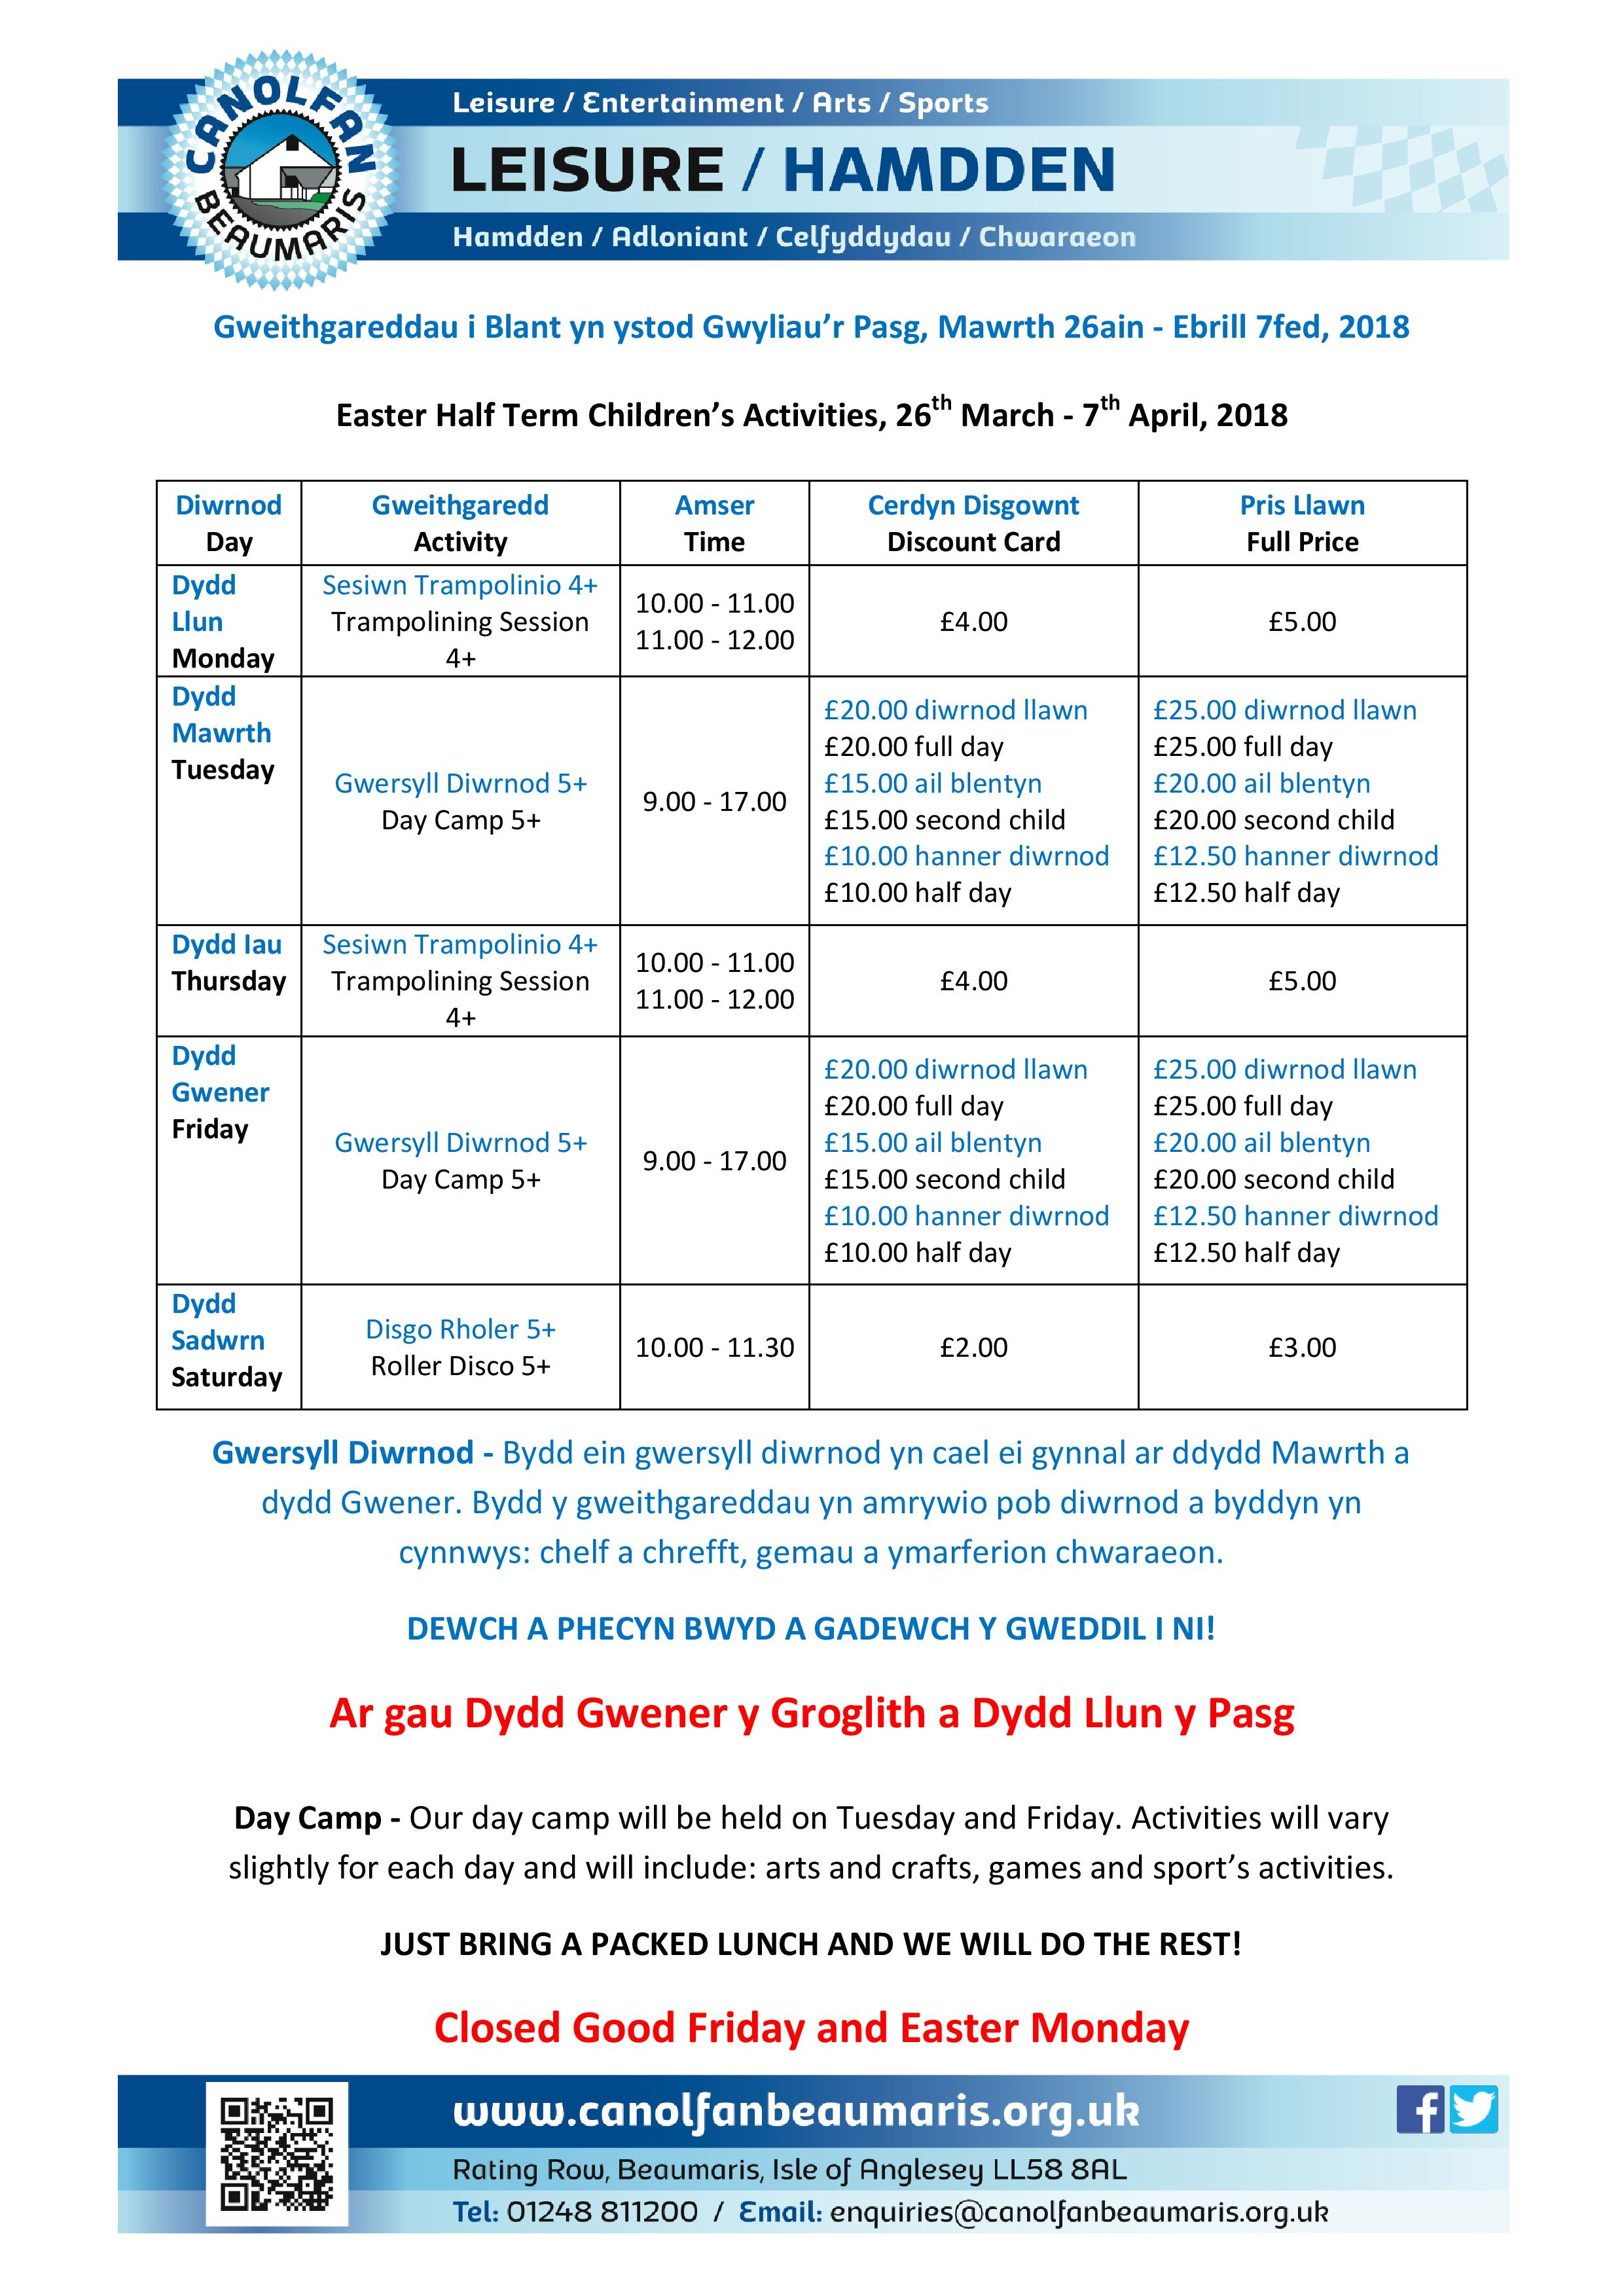 Easter Half Term Children's Activities